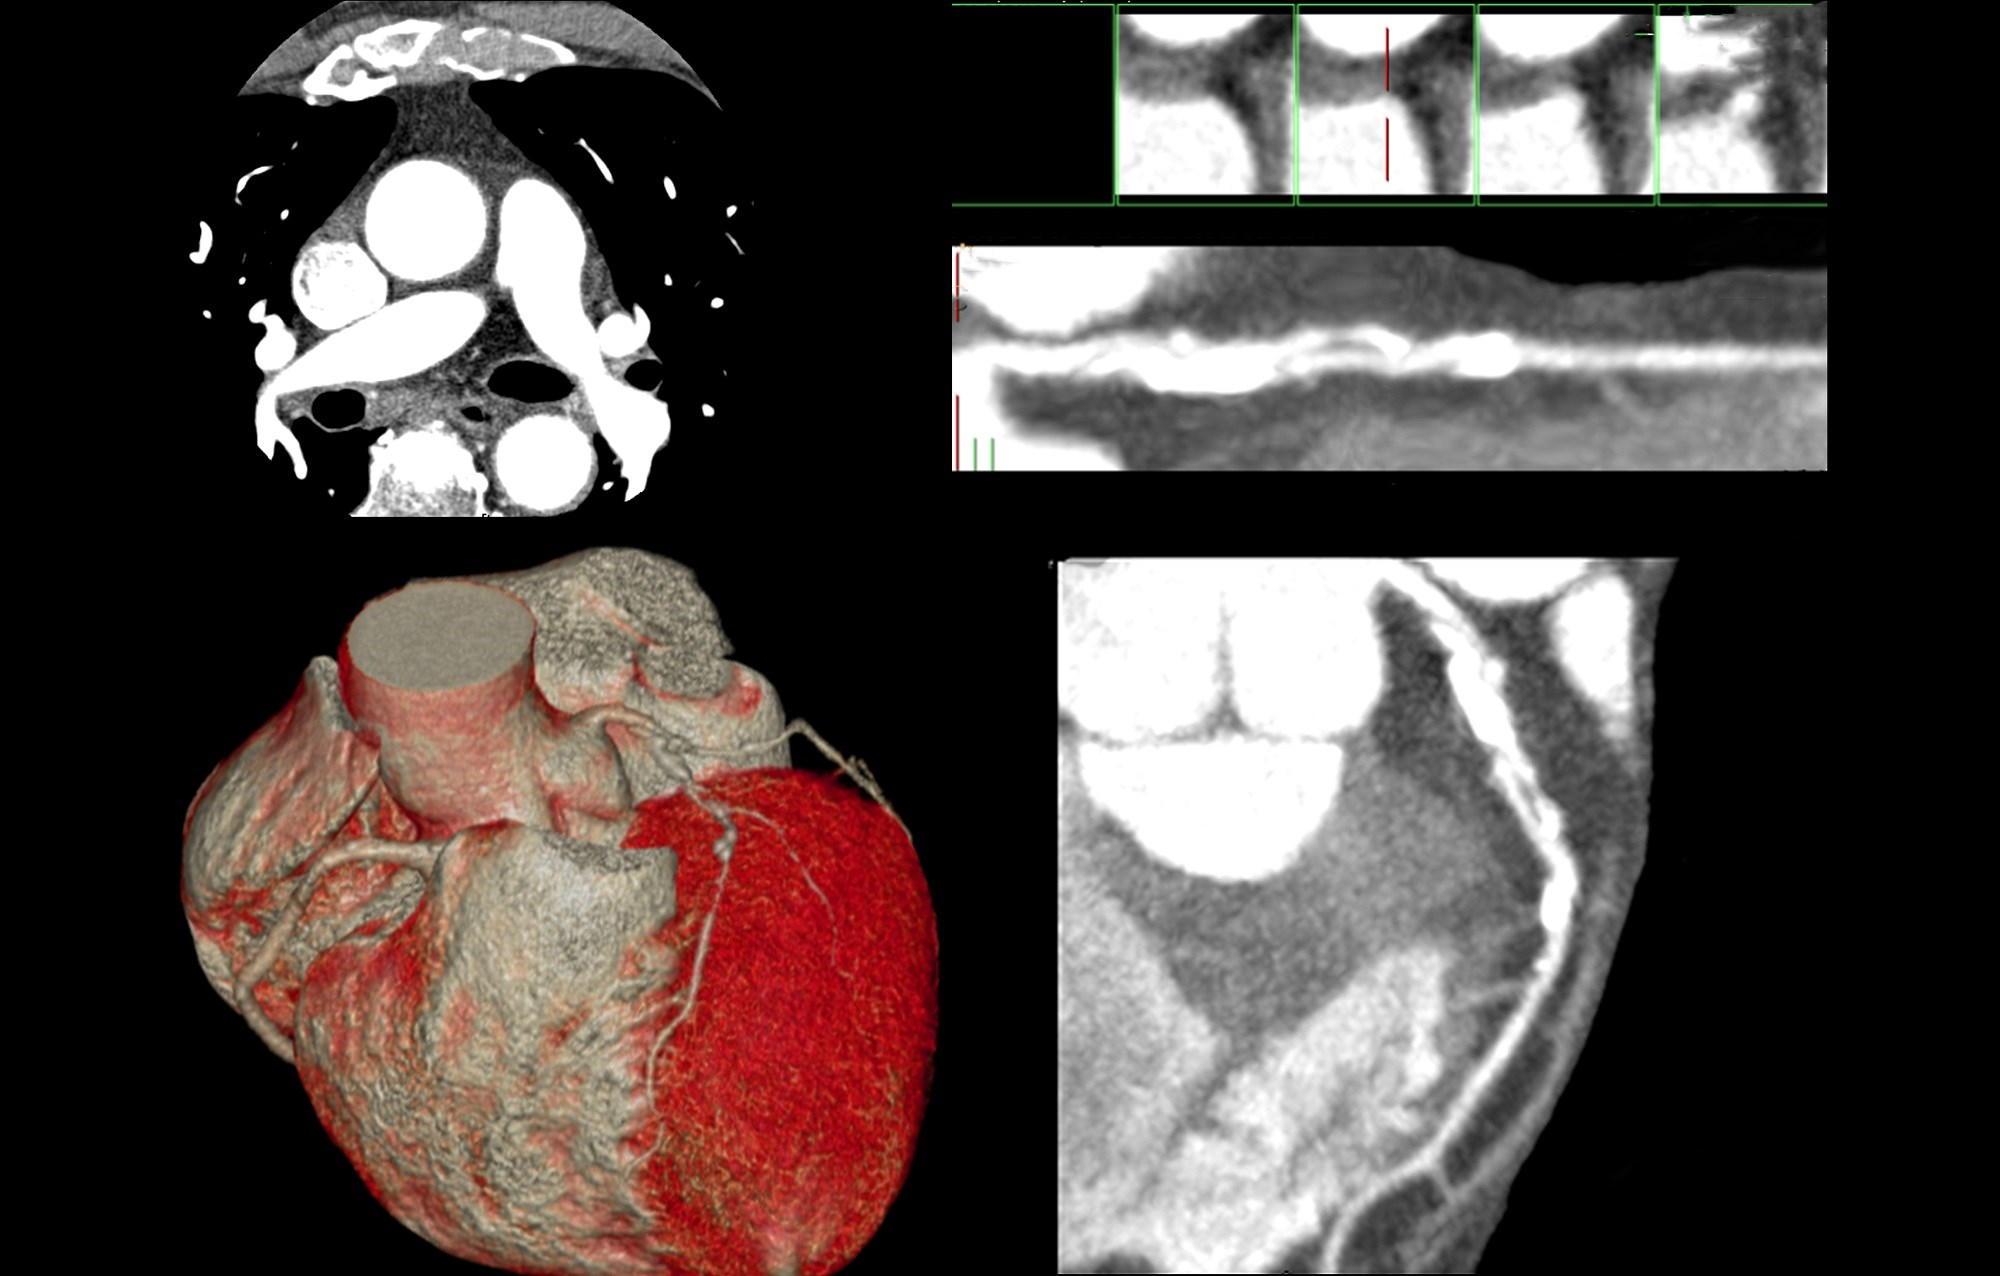 Coronary CTA Superior to Standard Care in Stable Chest Pain